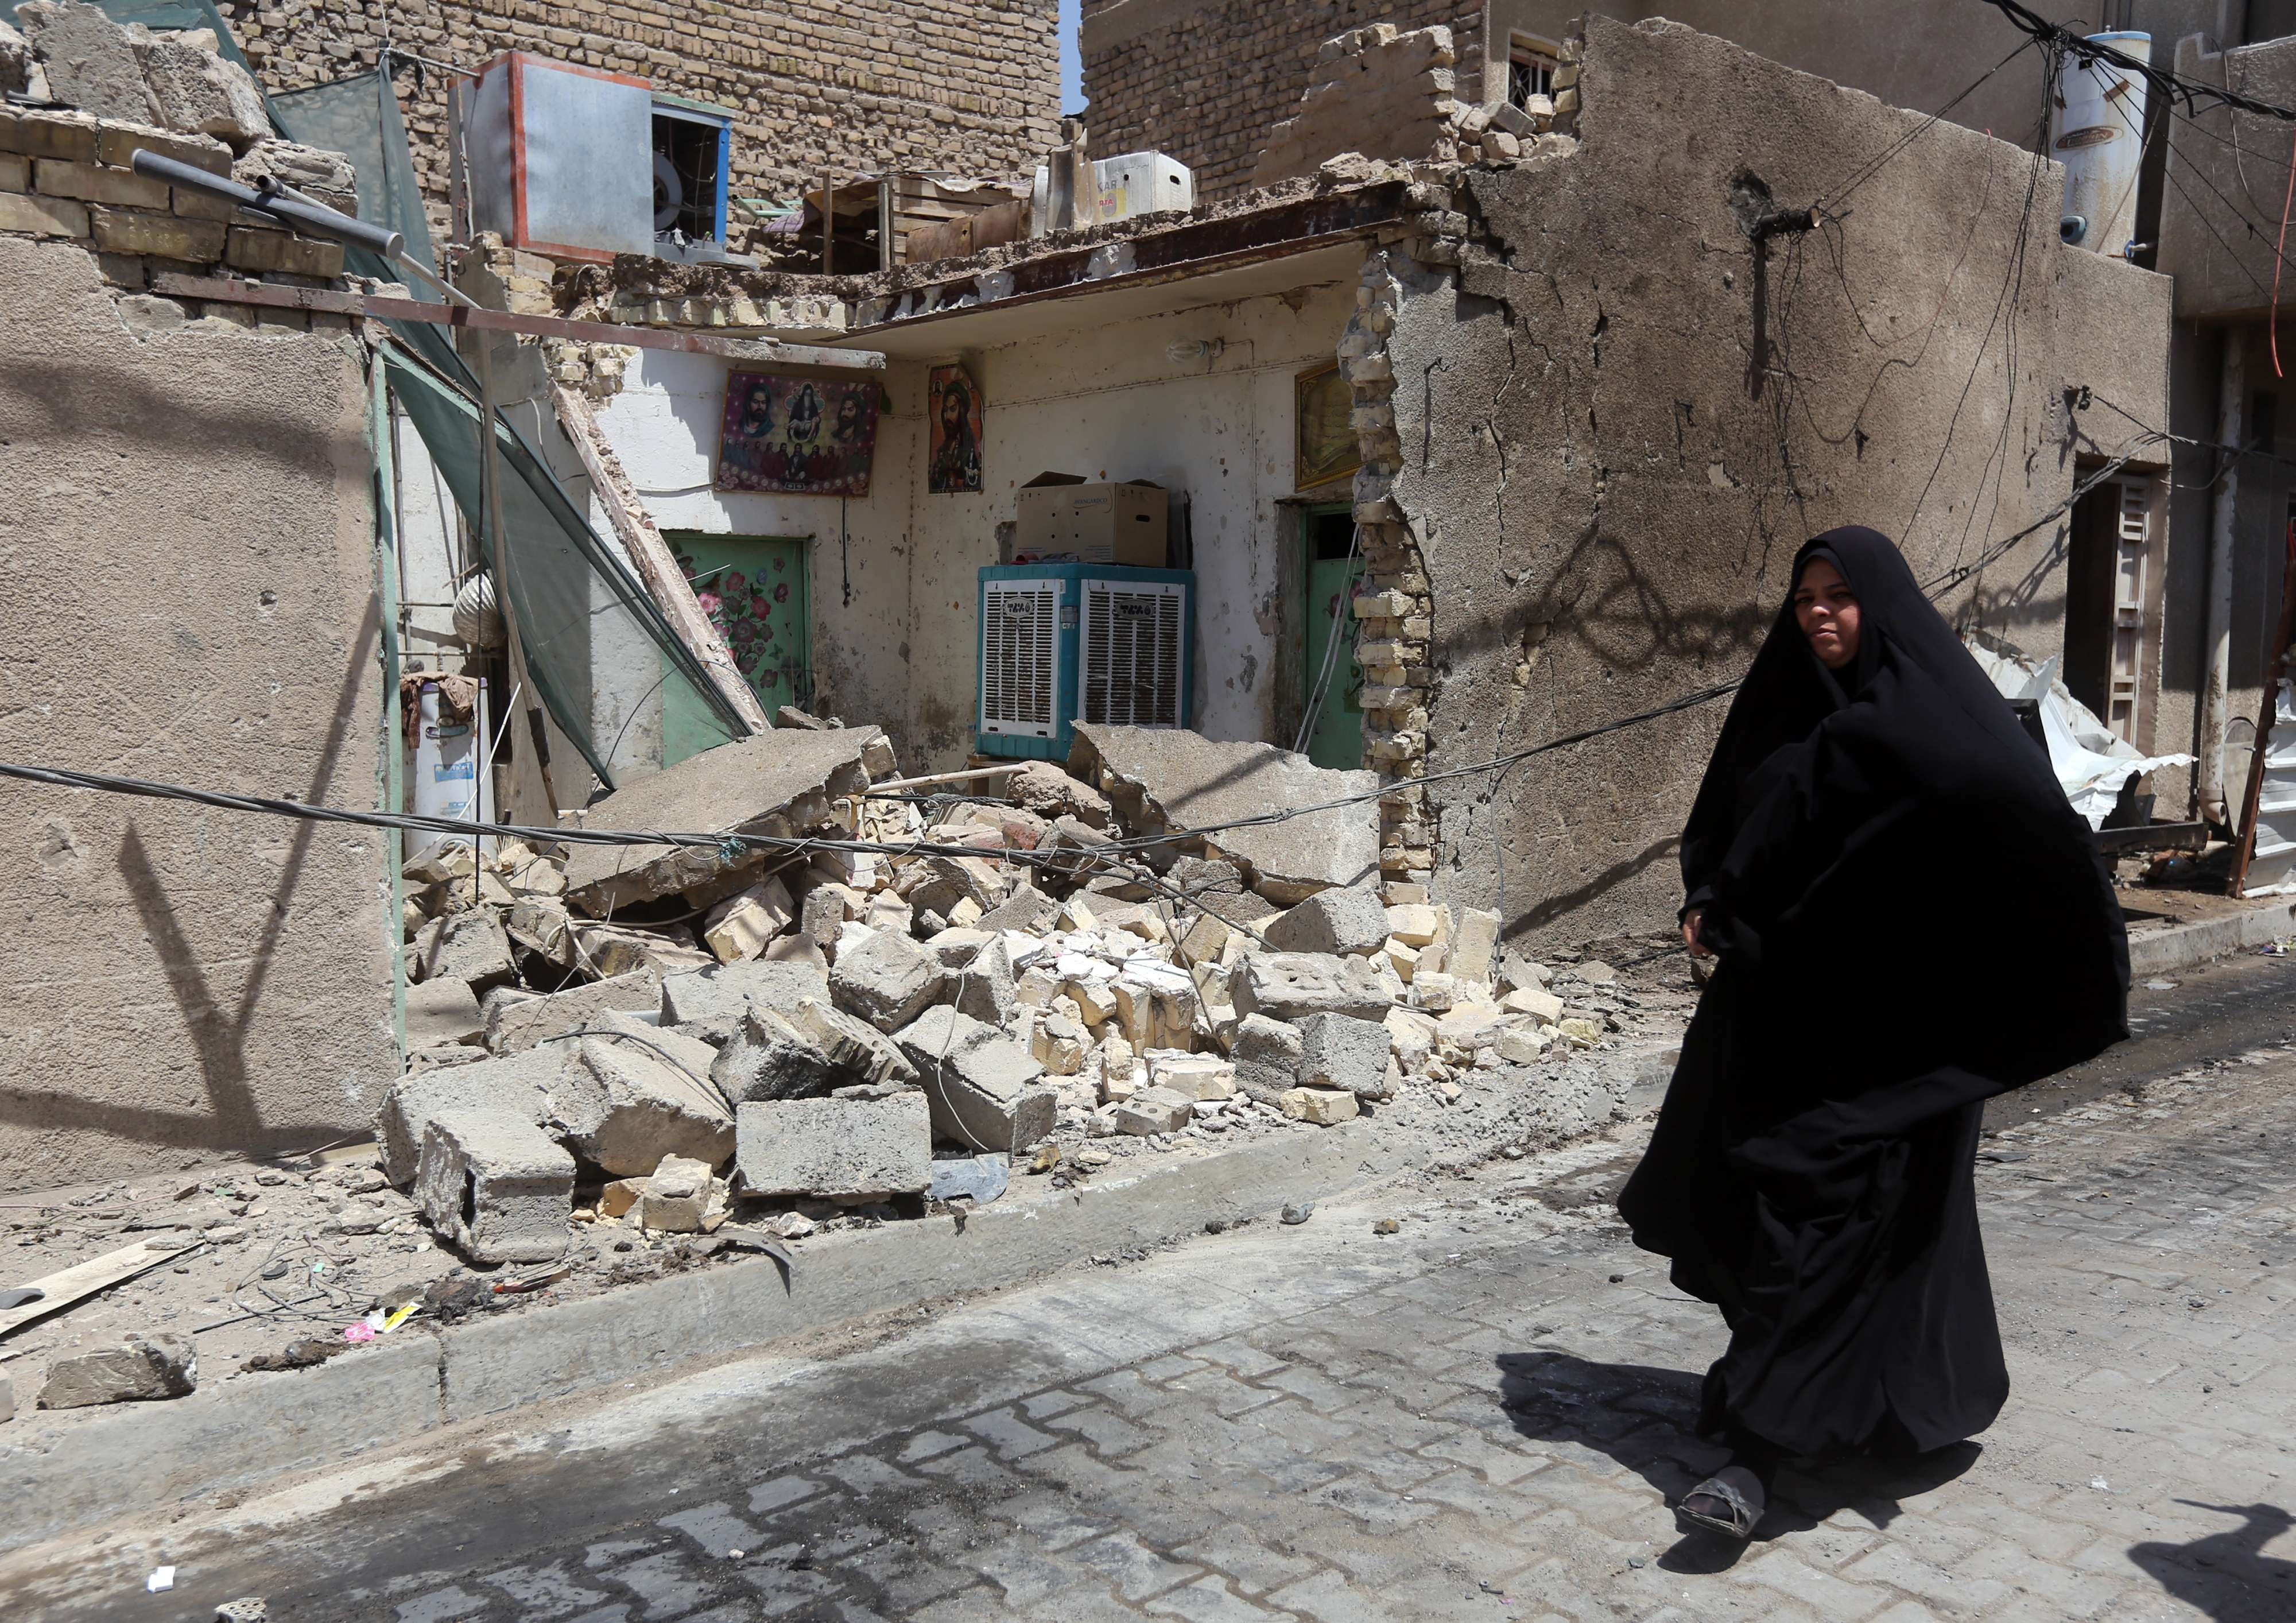 An Iraqi woman walks past a house damaged by a car explosion on Tuesday  in Baghdad's northern Shiite-majority district of Sadr City. A spate of rush hour car bombs rocked Shiite-majority areas of Baghdad, killing 25 people in the first major series of attacks to hit the Iraqi capital since elections last month. (AFP PHOTO / AHMAD AL-RUBAYE)